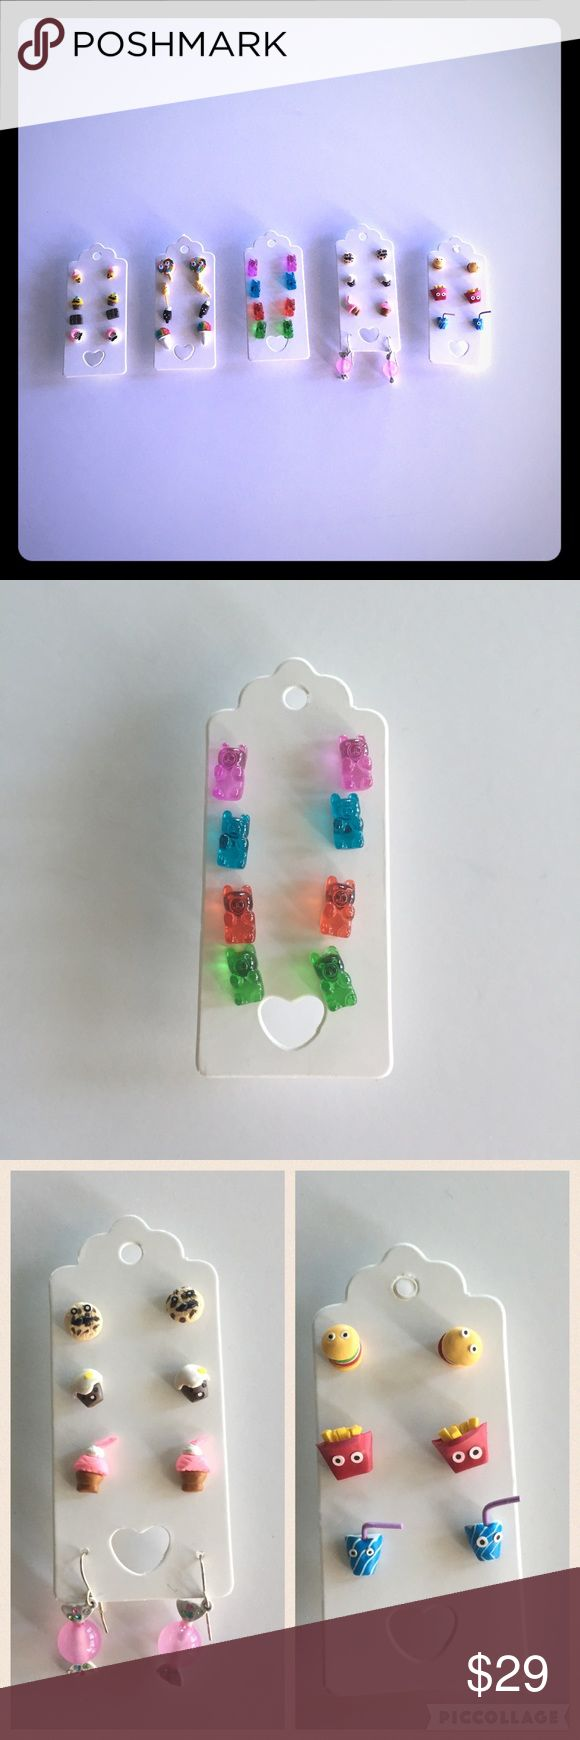 19 Pairs - Claire's Foodie Earrings -Stud & Dangle Gummy bears, cookies, lollipops, snow cones, chololate bars, popsicles, candy, cupcakes, donuts, hamburgers, fires, shakes. Some with faces, some without. 18 Pairs of stud earrings, 1 pair of dangle earrings. Claire's Accessories Jewelry